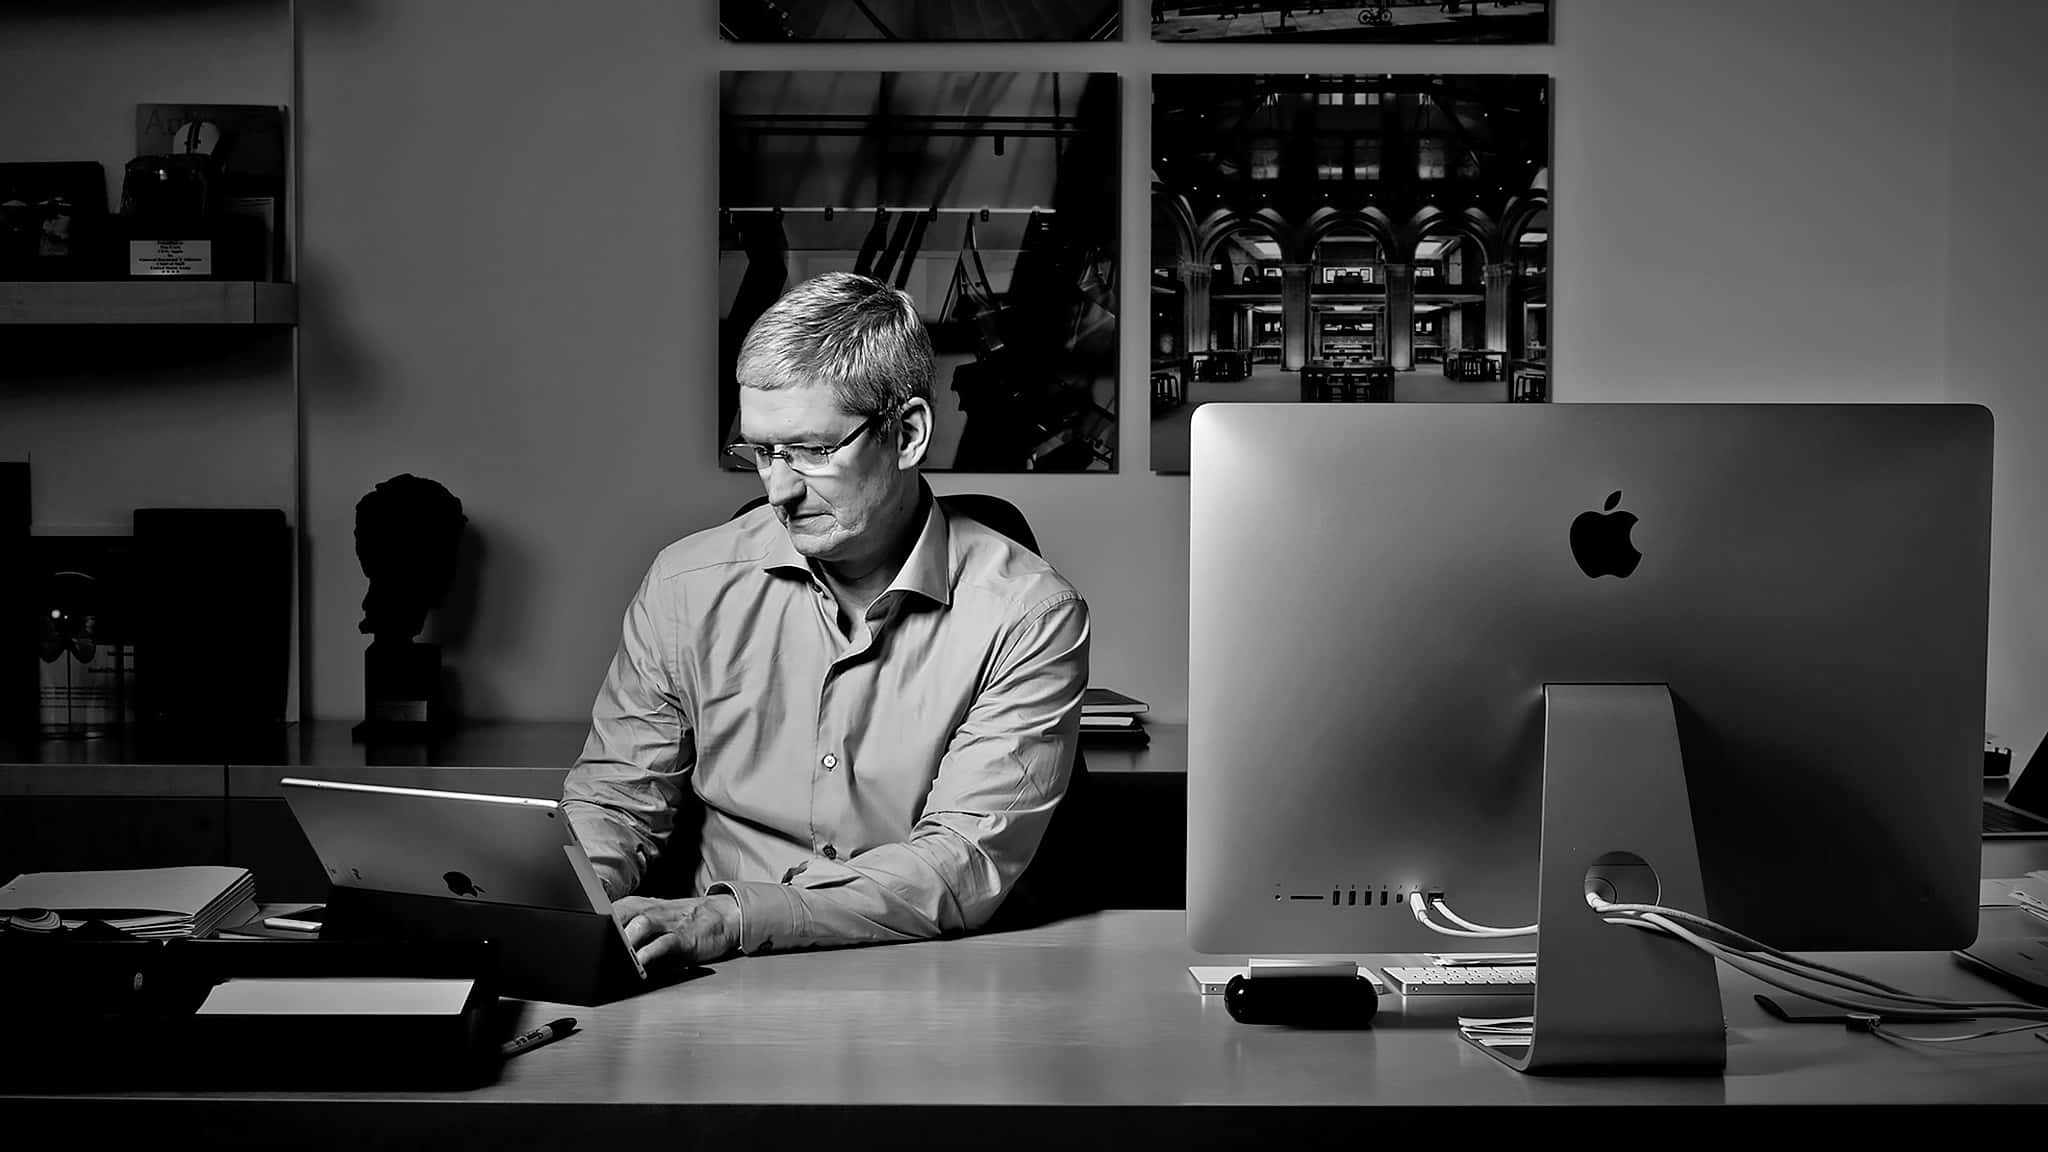 Apples CEO Tim Cook